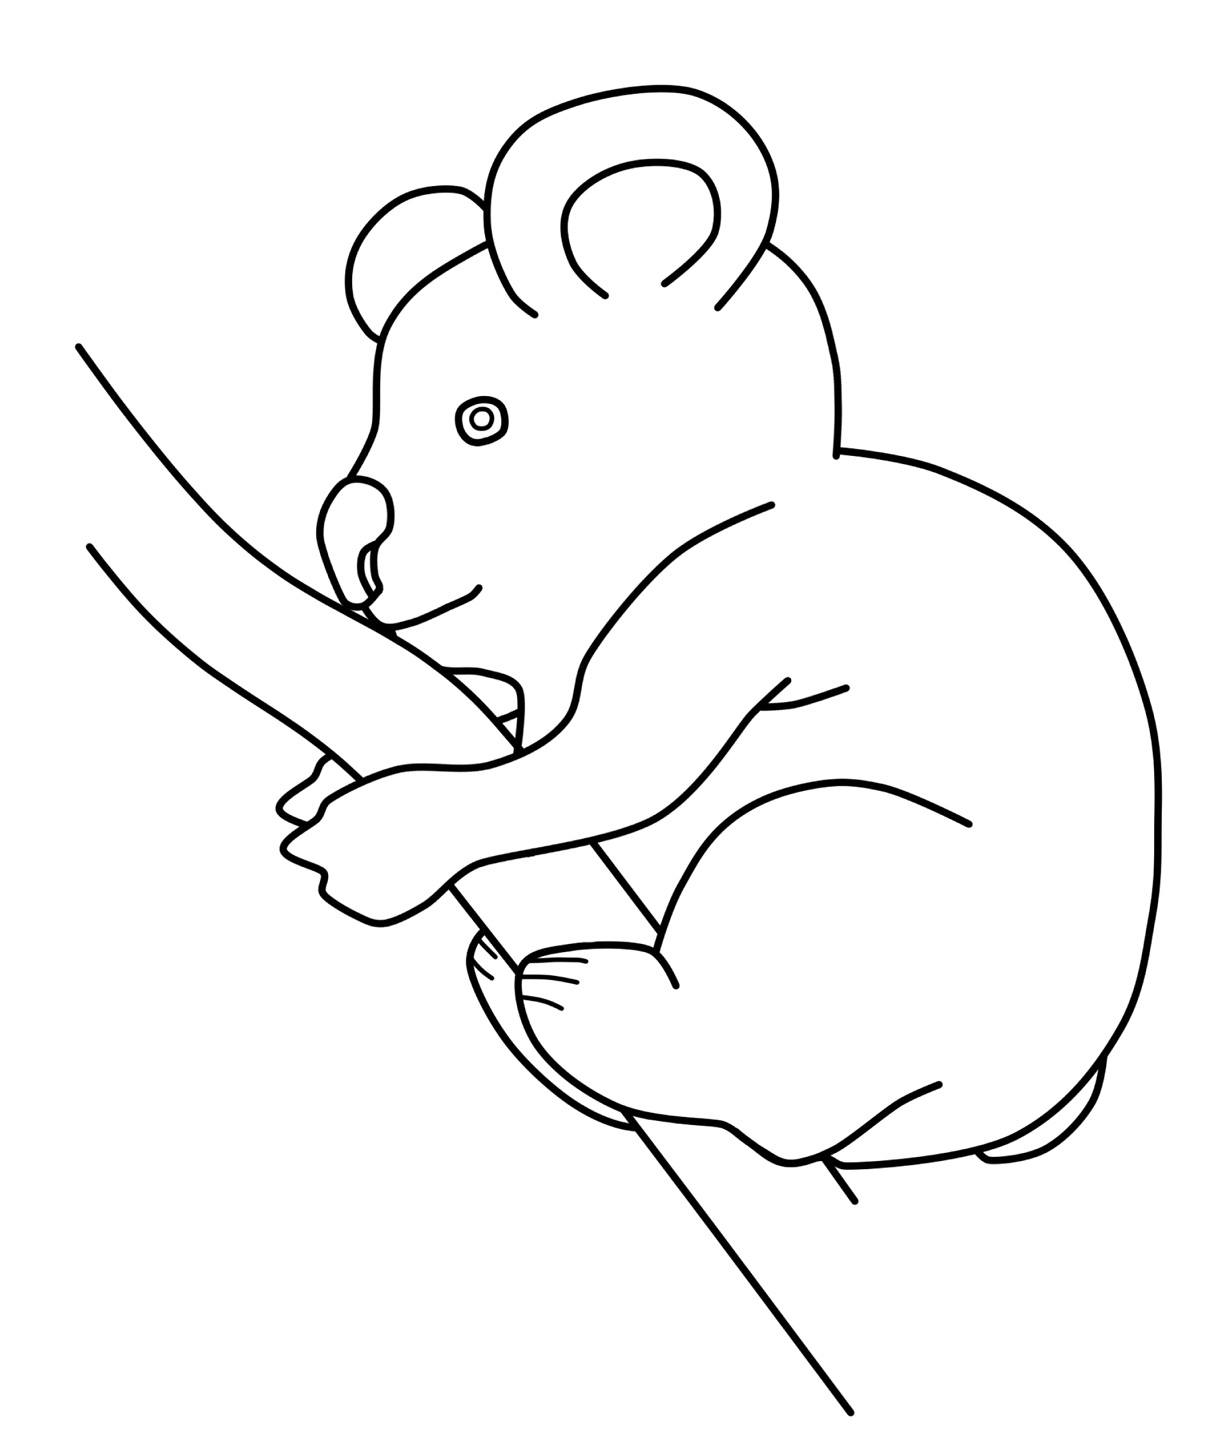 koala pictures to colour in free printable koala coloring pages for kids animal place koala pictures in colour to